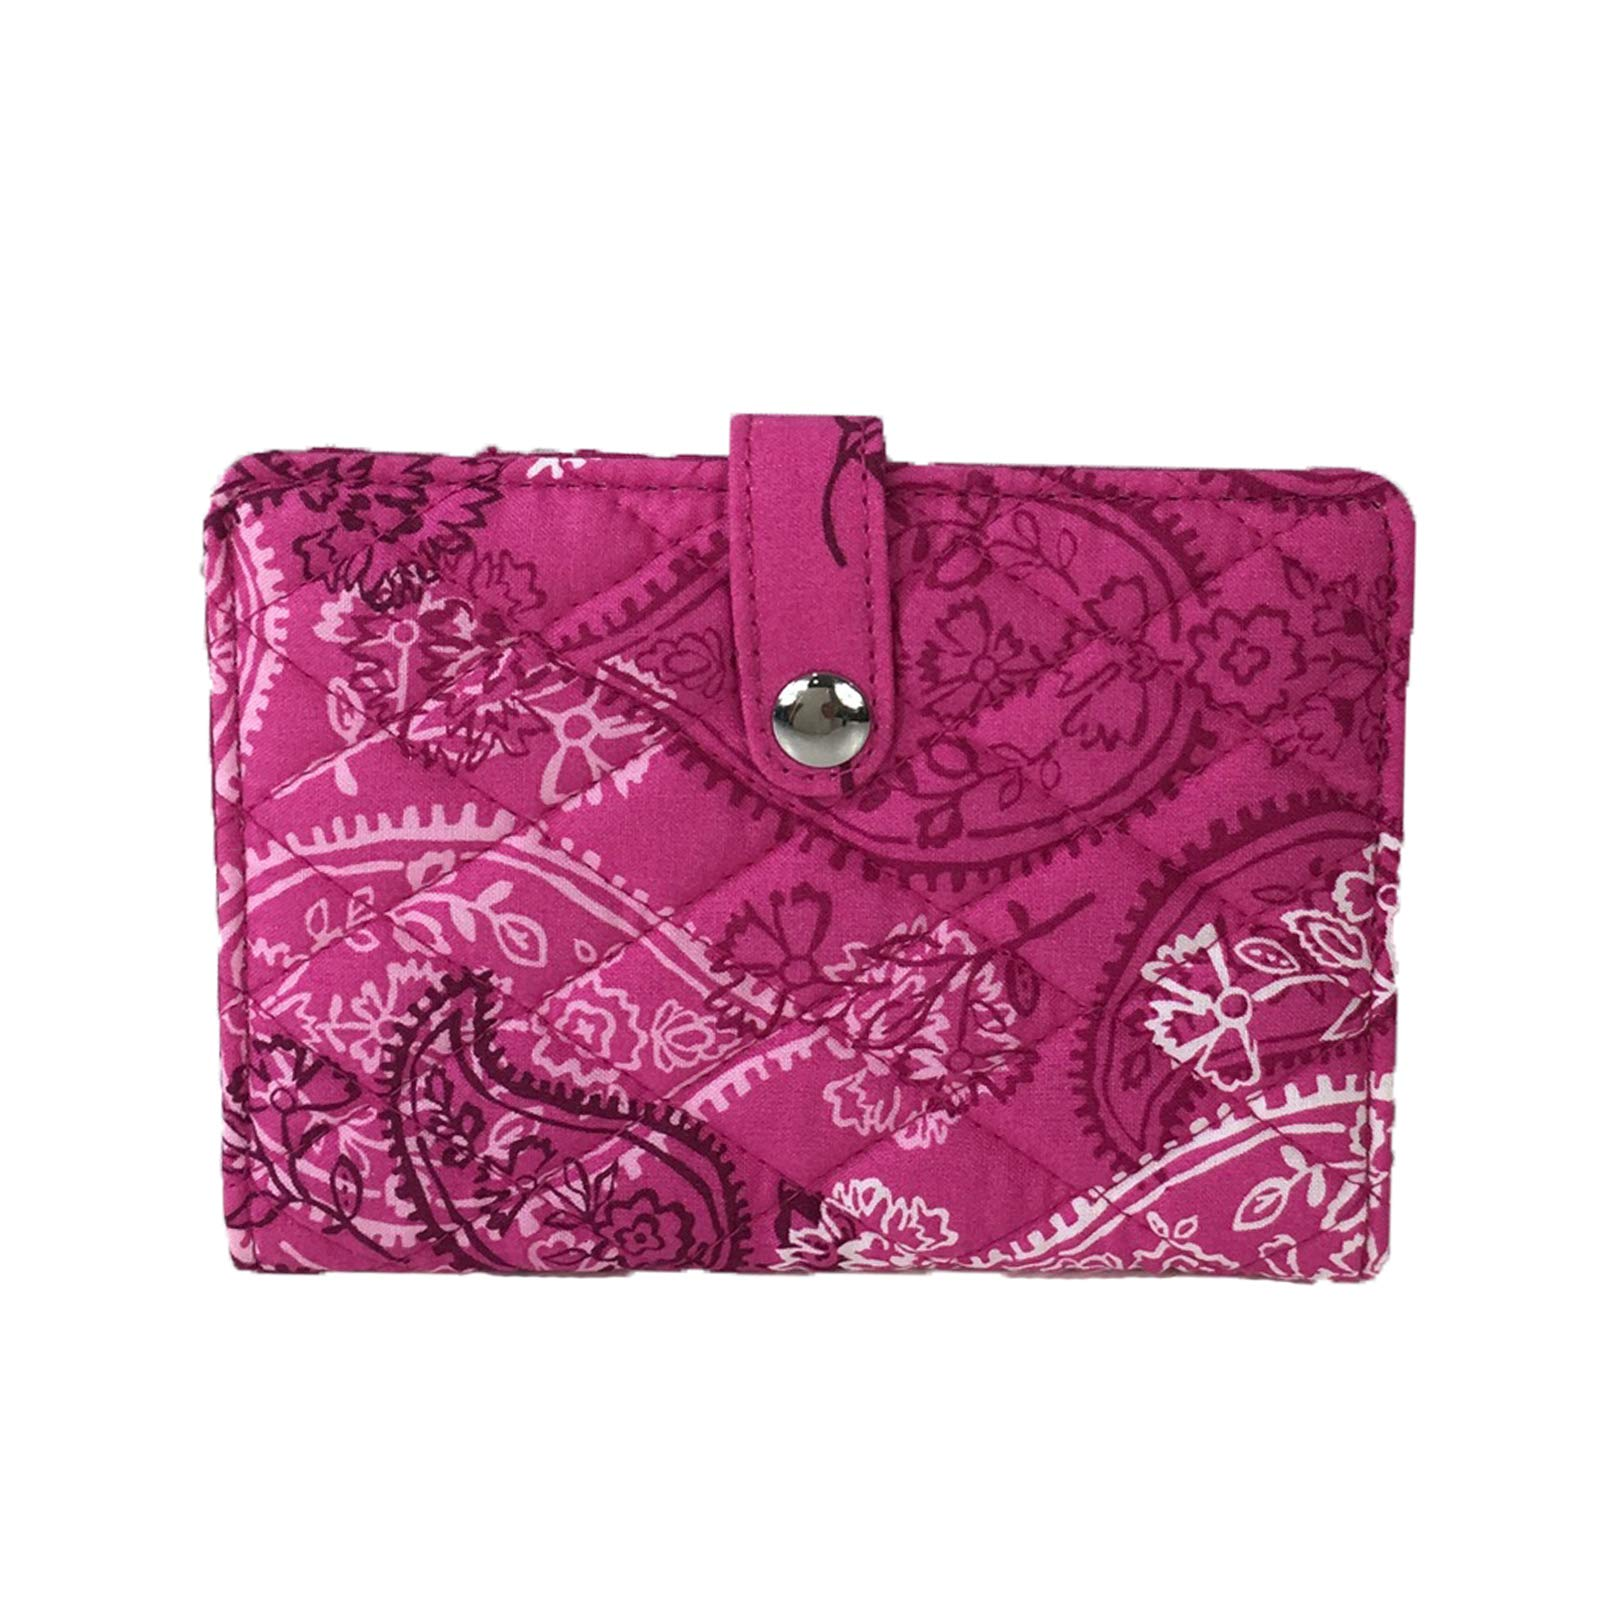 Vera Bradley Signature Travel Passport Wallet, Stamped Paisley